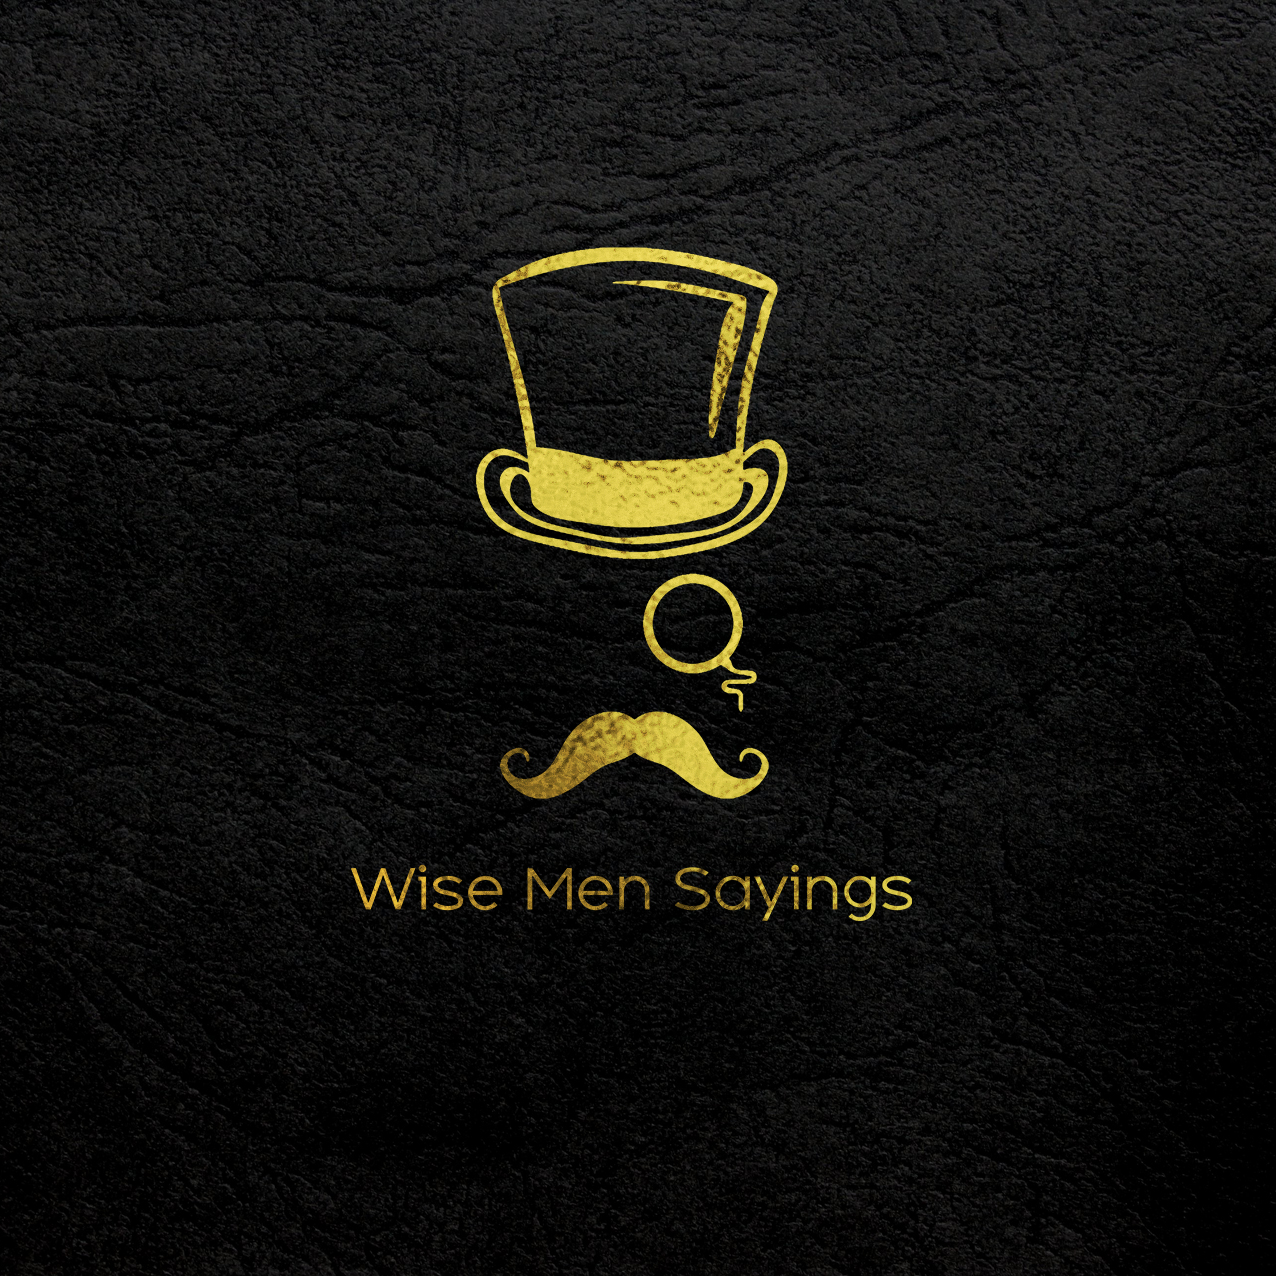 Wisemensayings - A page to gain wisdom and be more wiser.